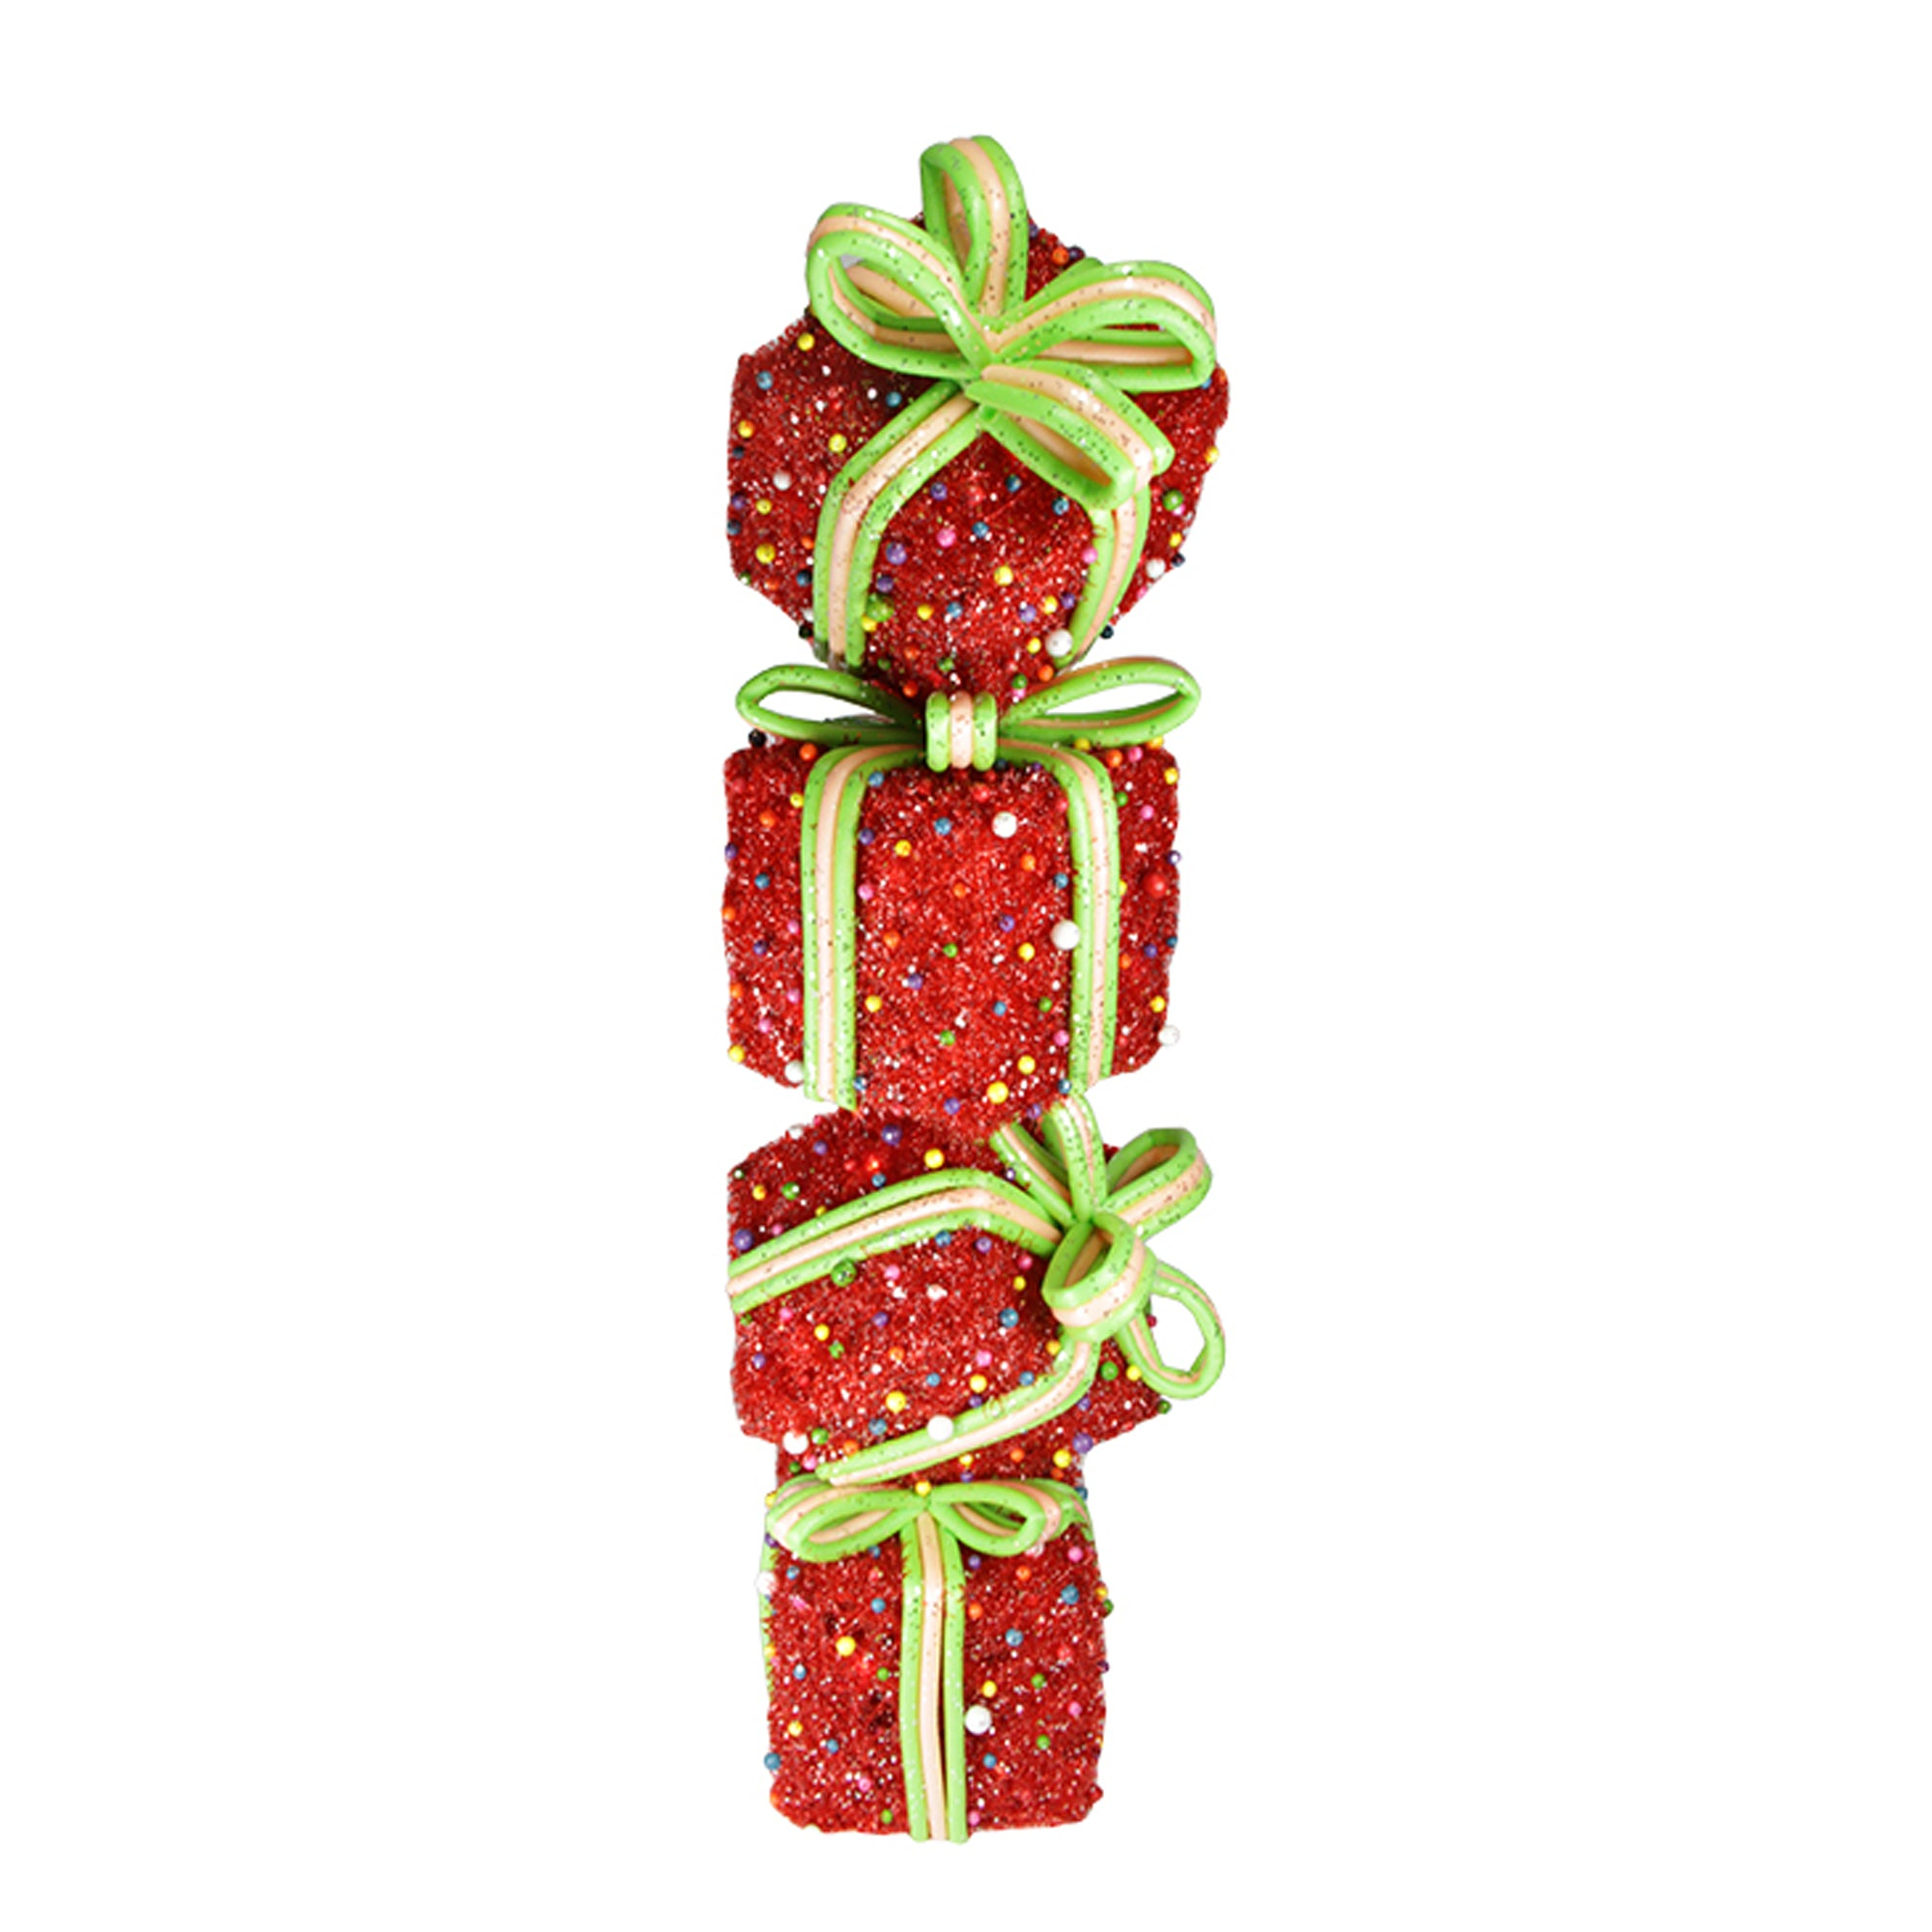 34 lighted red tinsel and candy stacked gift boxes christmas outdoor decoration - Outdoor Tinsel Christmas Decorations